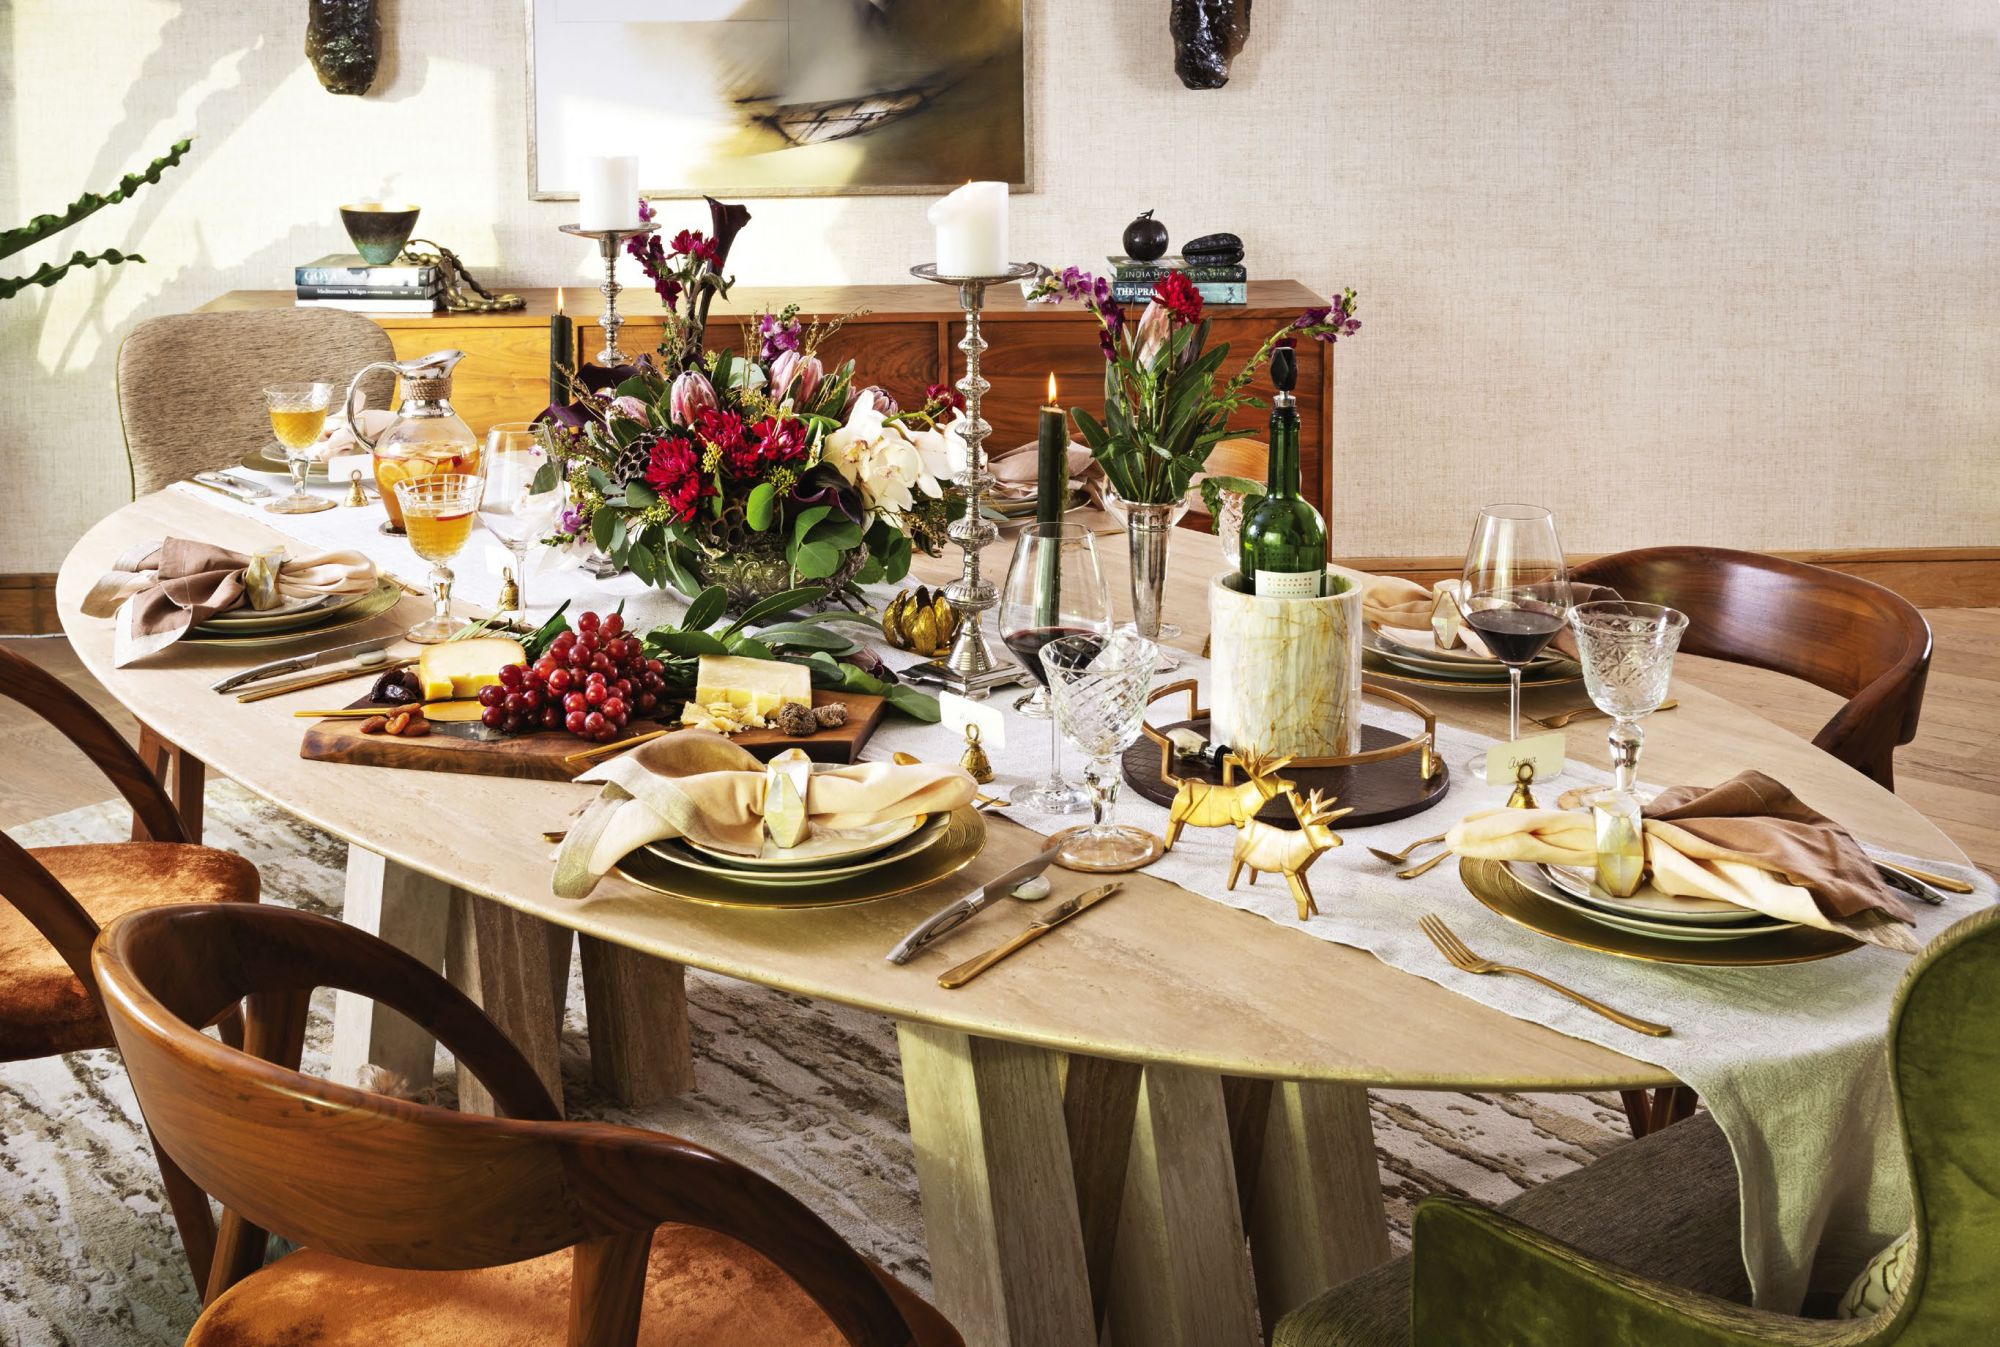 Embla dining chair and buffet table, and Polk chair at Philux; napkin ring, gold capiz coaster, solid walnut slab, silver candelabra, marble wine holder, circular decorative tray at Philux Home; flowers by Spruce Floral Designs; a delectable spread of foie gras with Asian fruit compote mesclun salad, deep sea scallop mille feuilles chive, braised lamb shank with red wine sauce, white wine risotto, chanterelles with apricot—all by L'Entrecote Manila